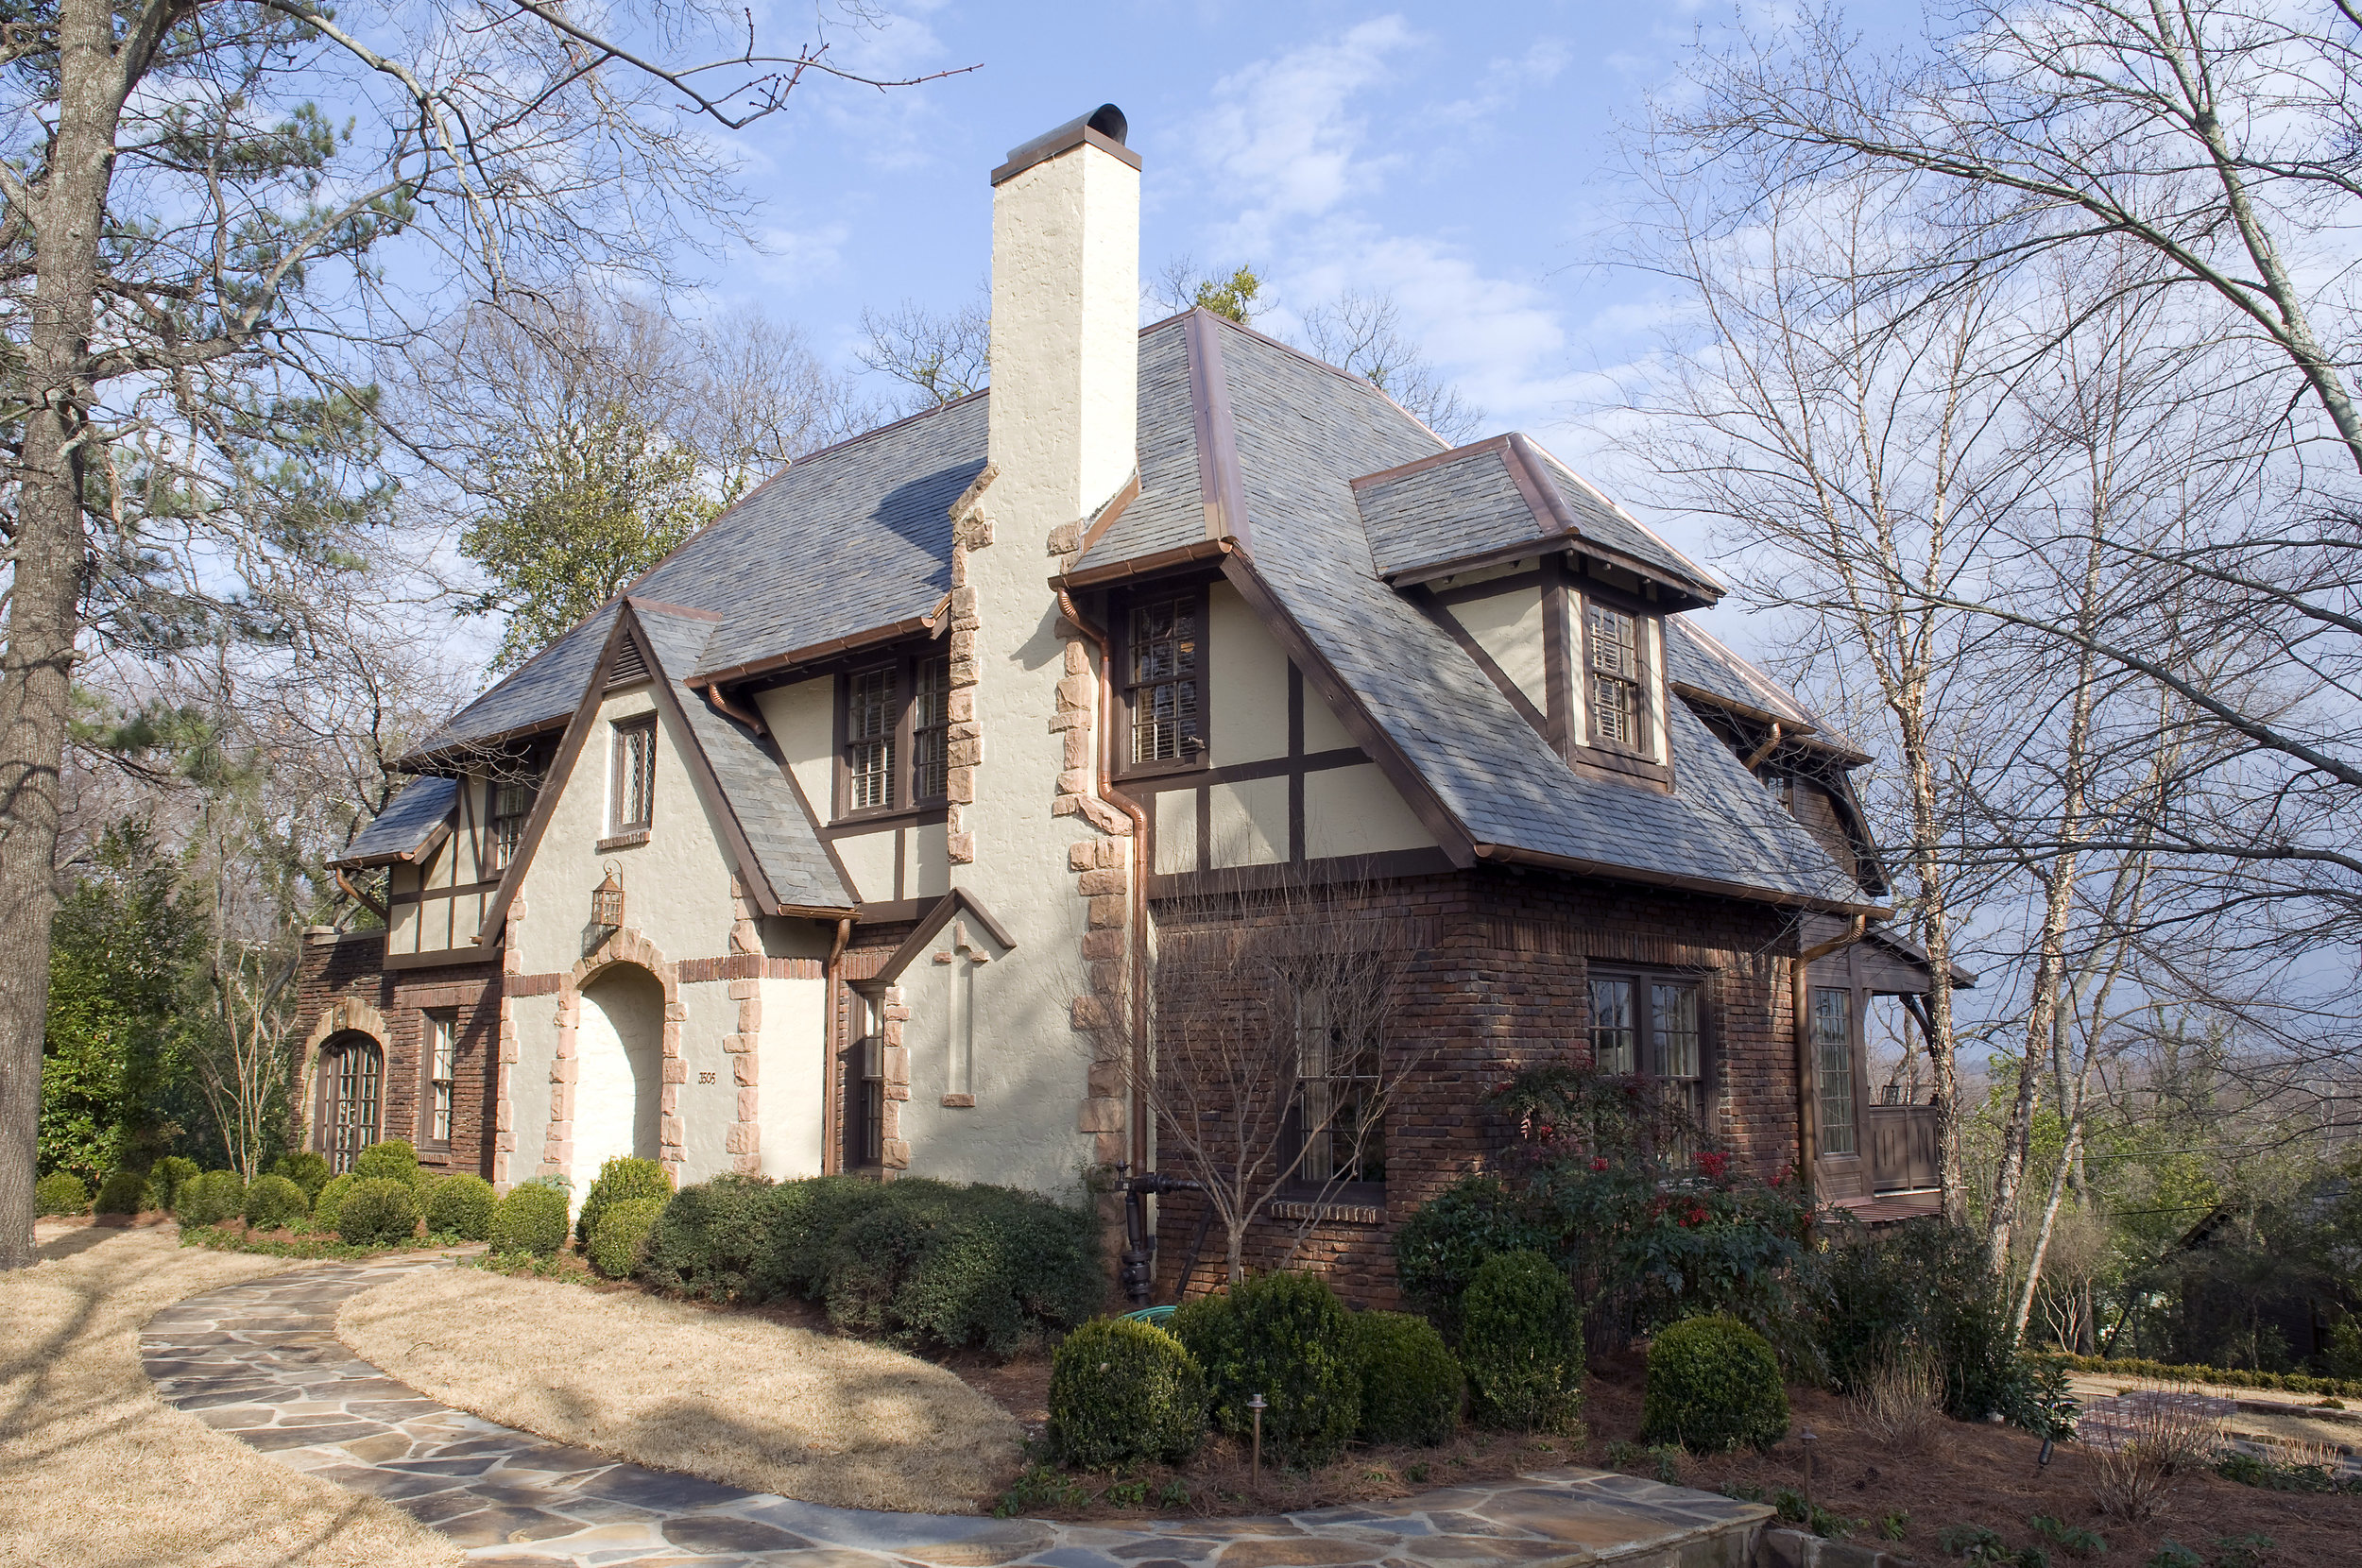 Dunnhouse Nick of Time magazine feature exterior and interior architecture design 2011 Alabama